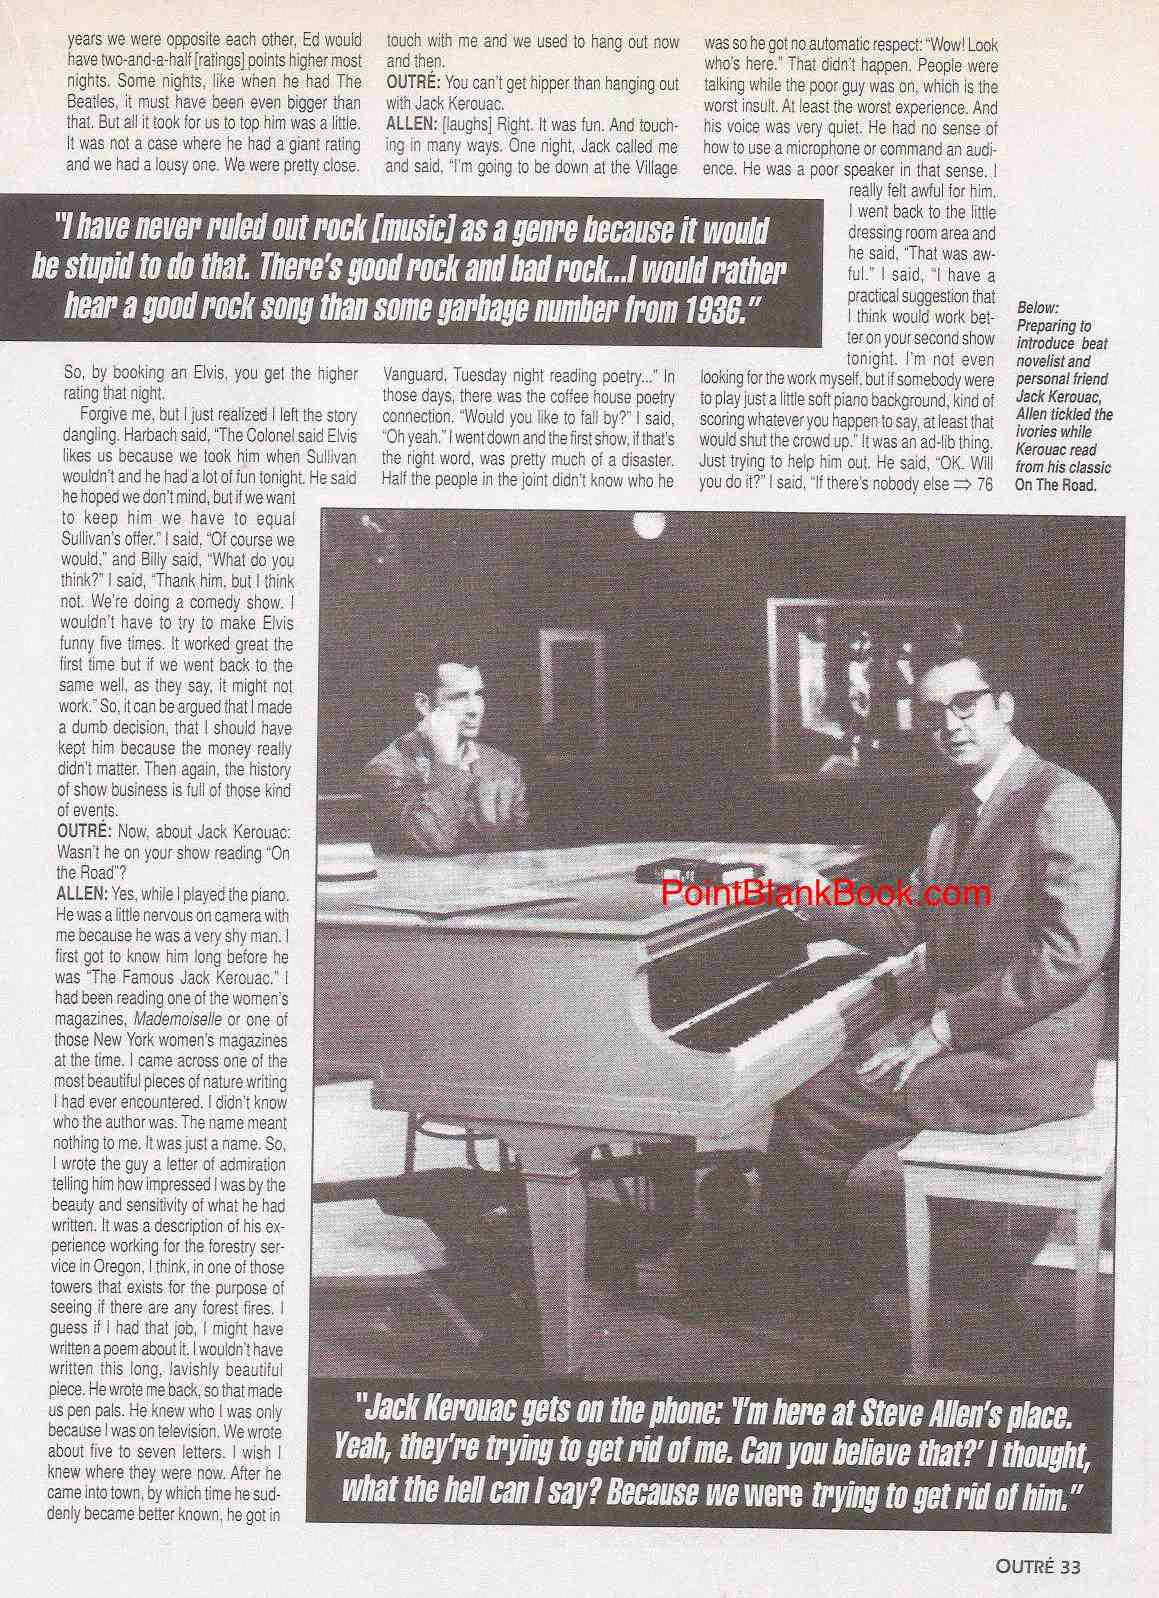 Steve Allen interview, page 6